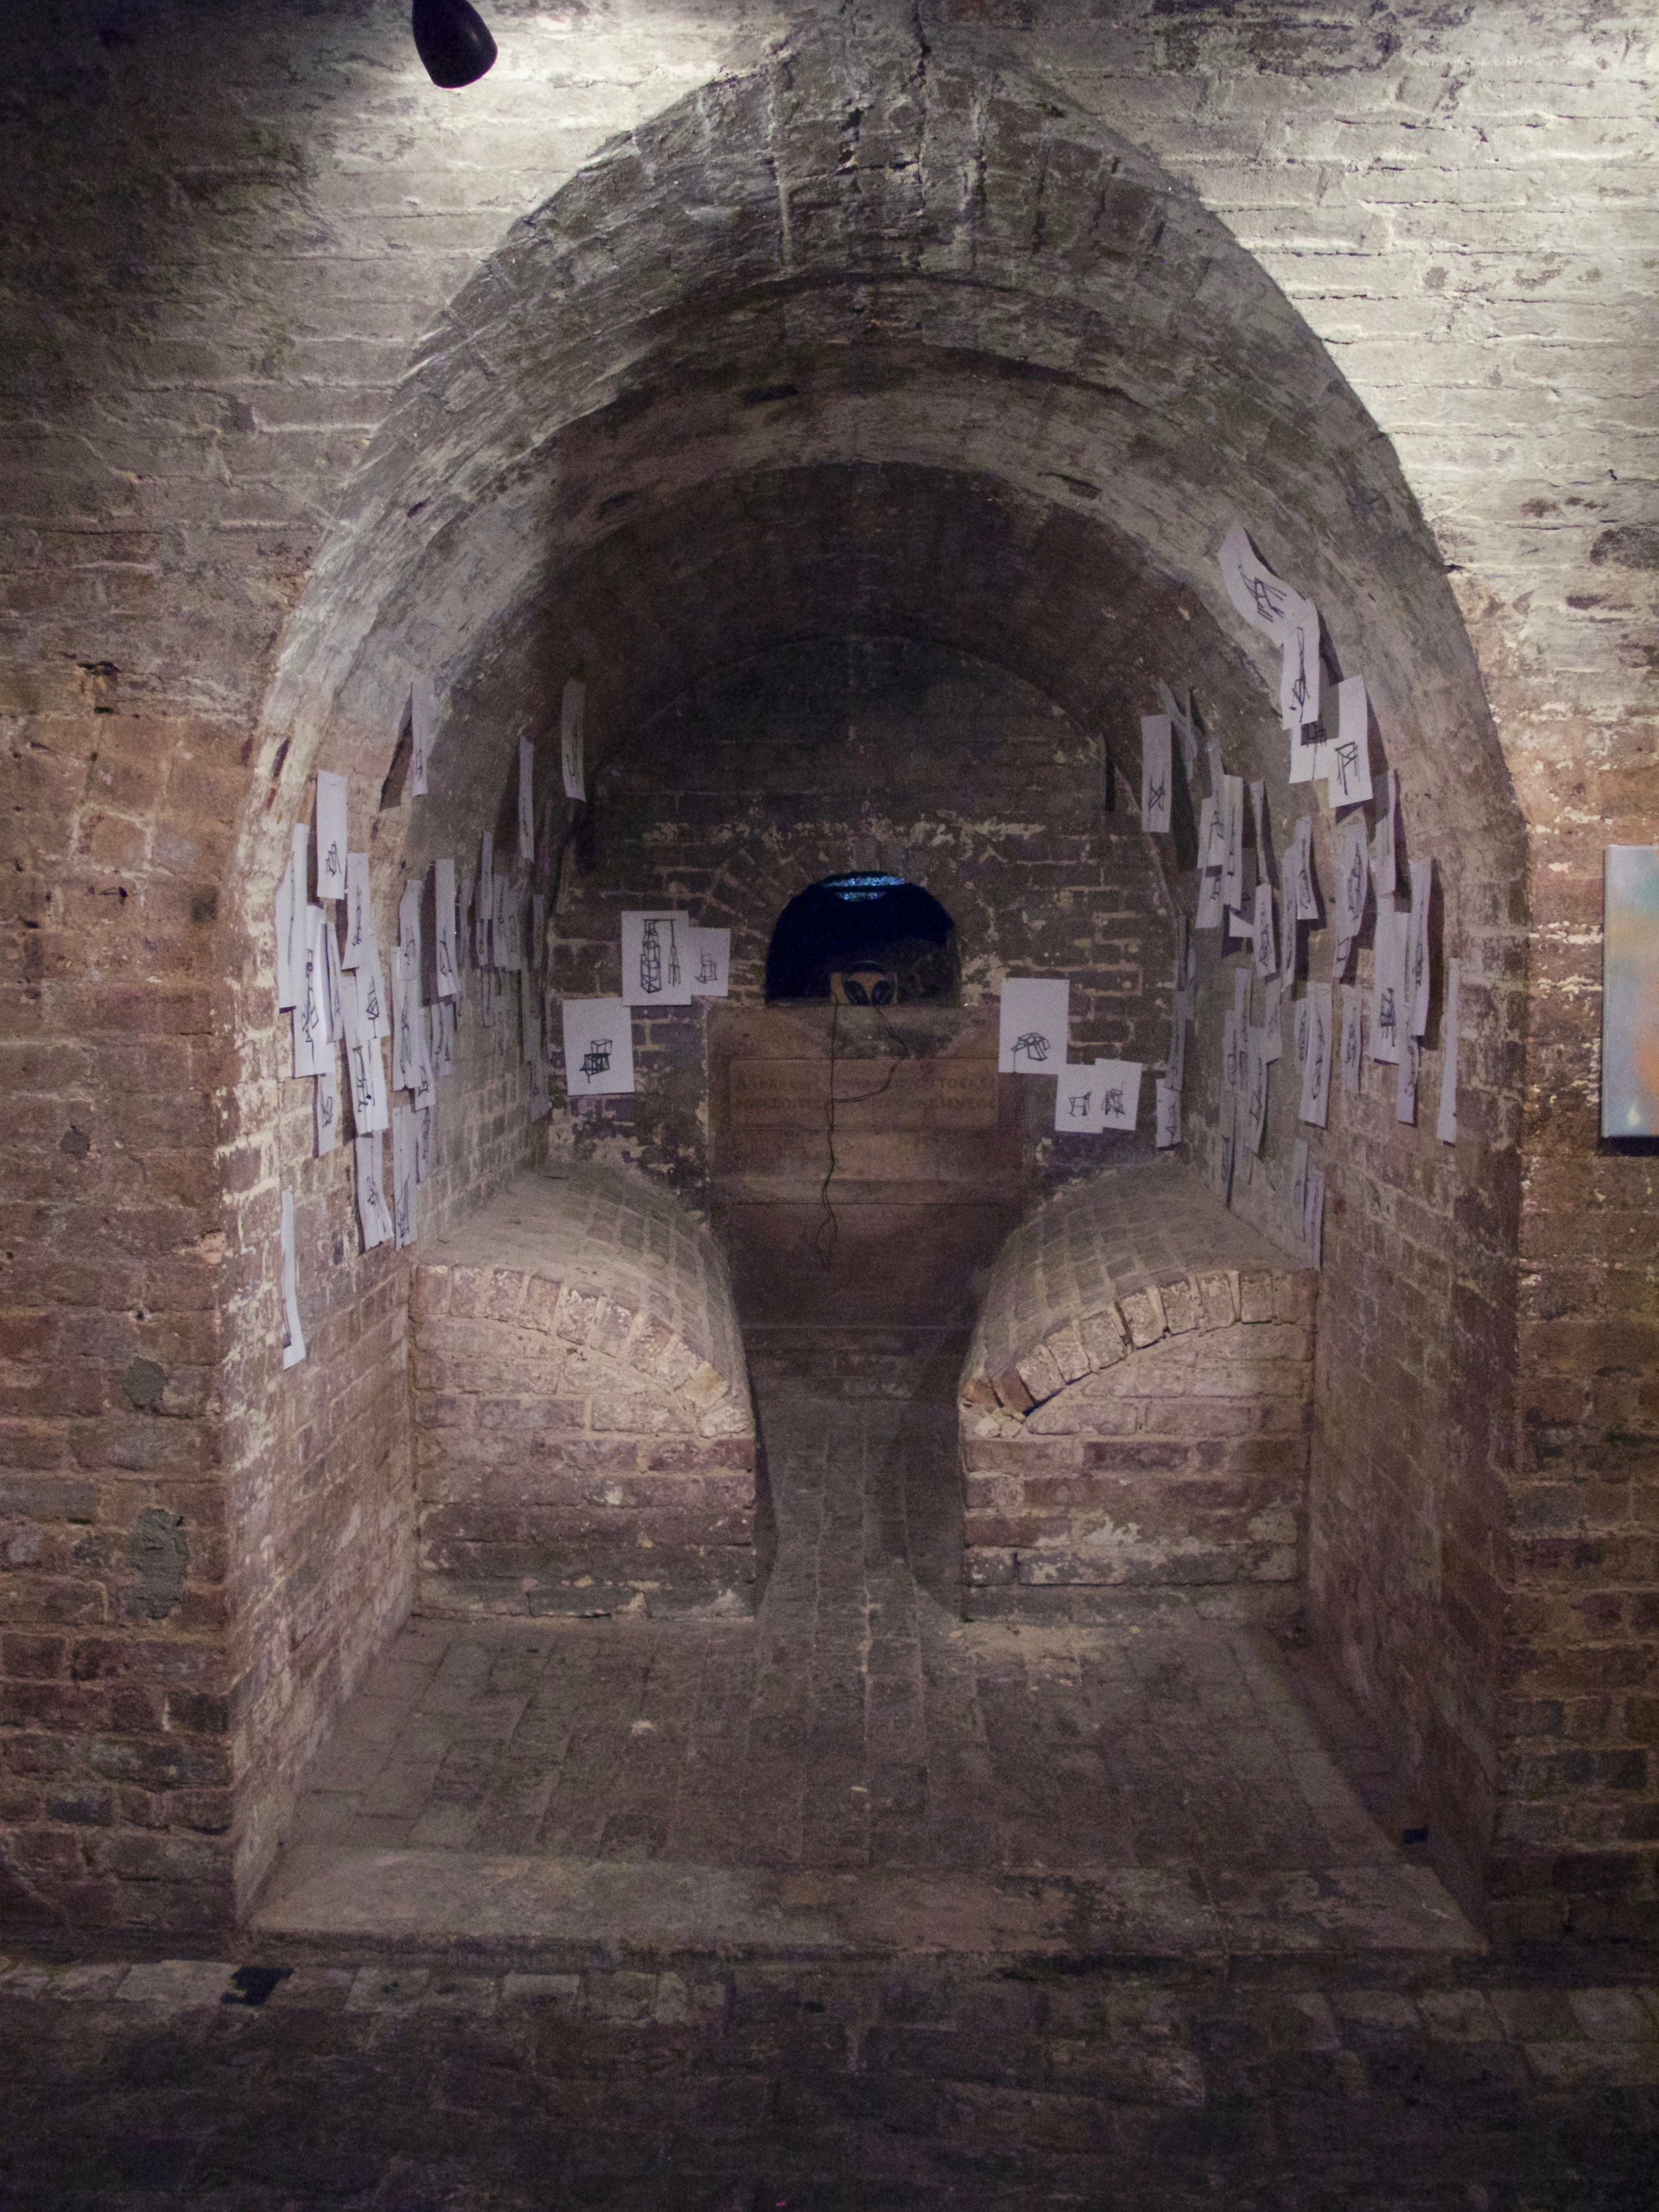 Ideas Never Die, installation at Crypt Gallery